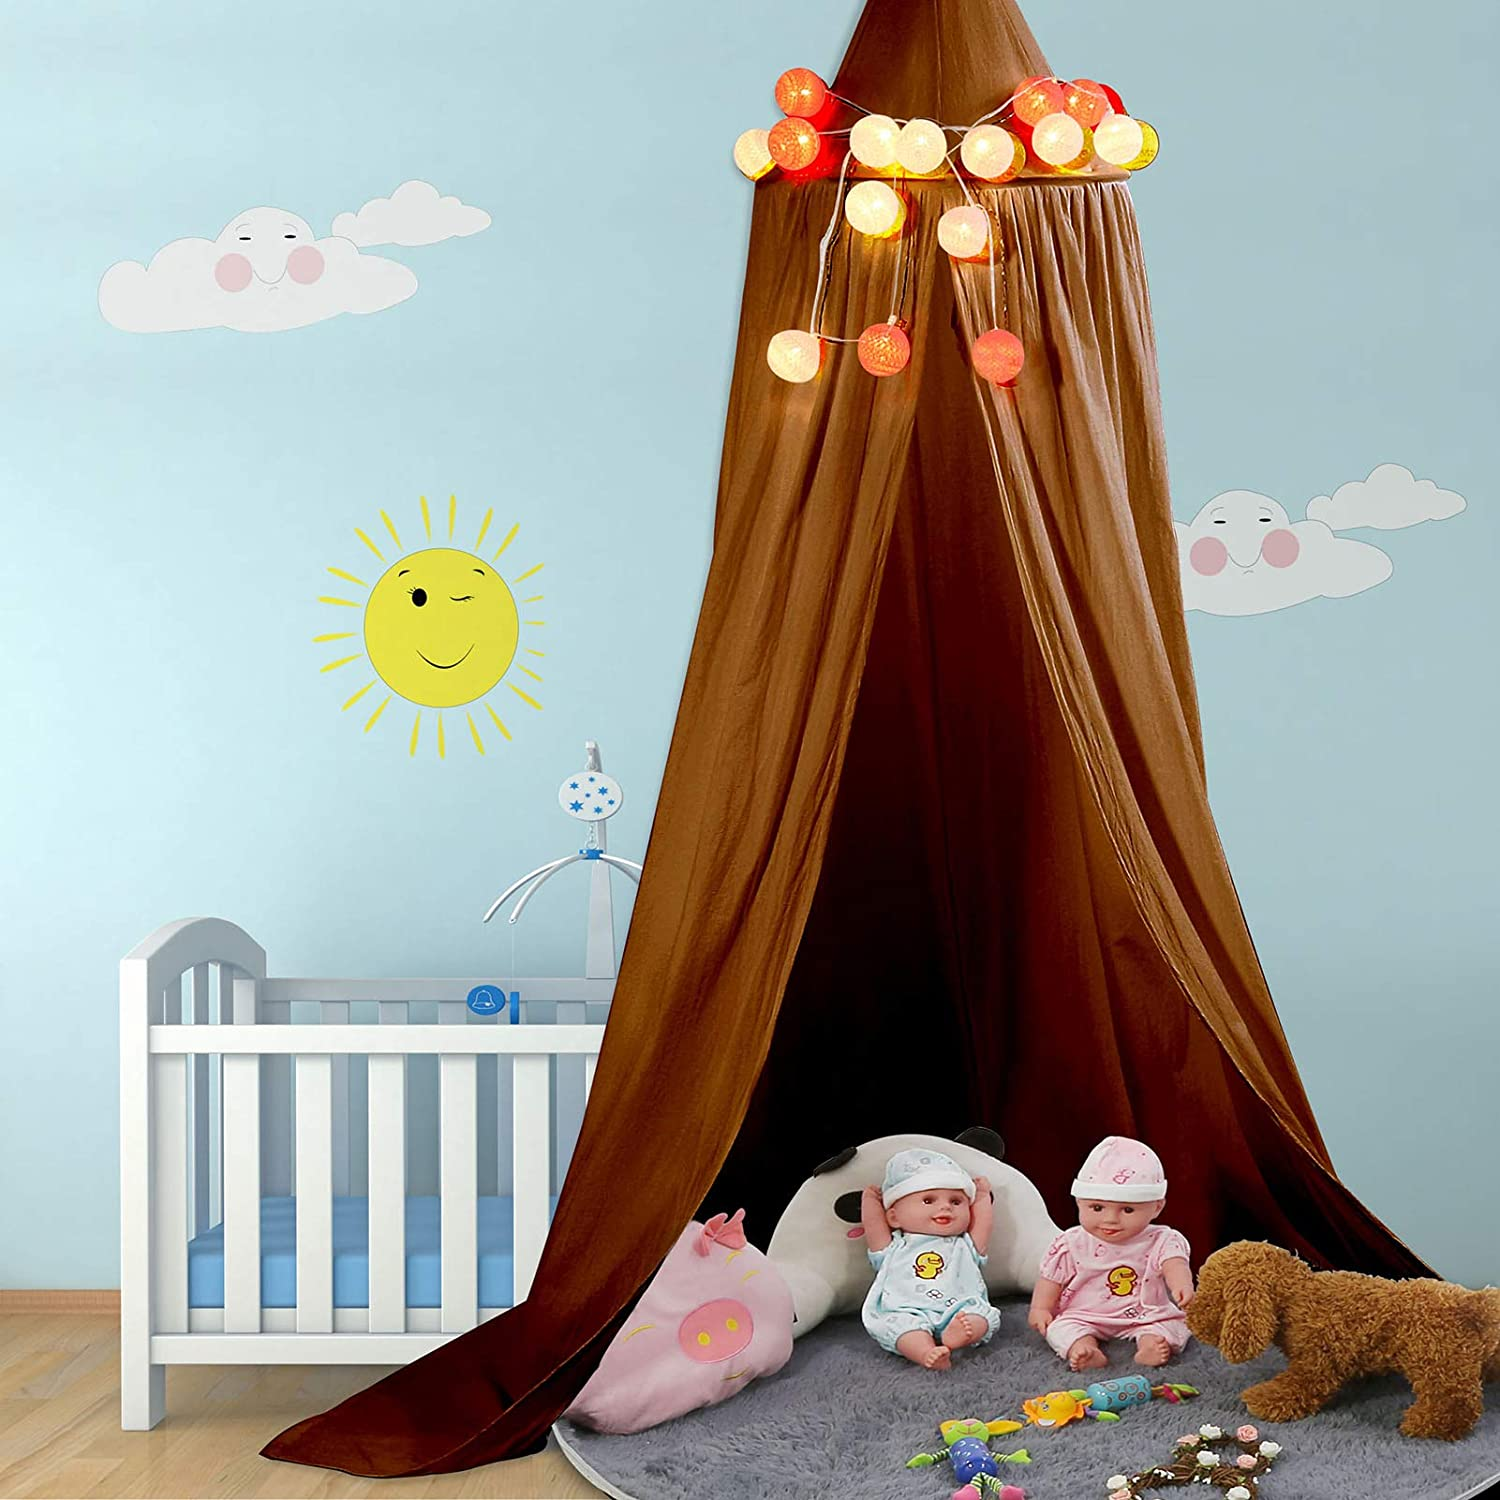 Bed Canopy Baby Bedding Round Dome Bed Canopy Room Decoration, Bed Curtains Kids Play Tent Hanging Tent Mosquito Net, Canopy Bed for Baby Kids Reading Playing Sleeping (Yellowish-Brown)